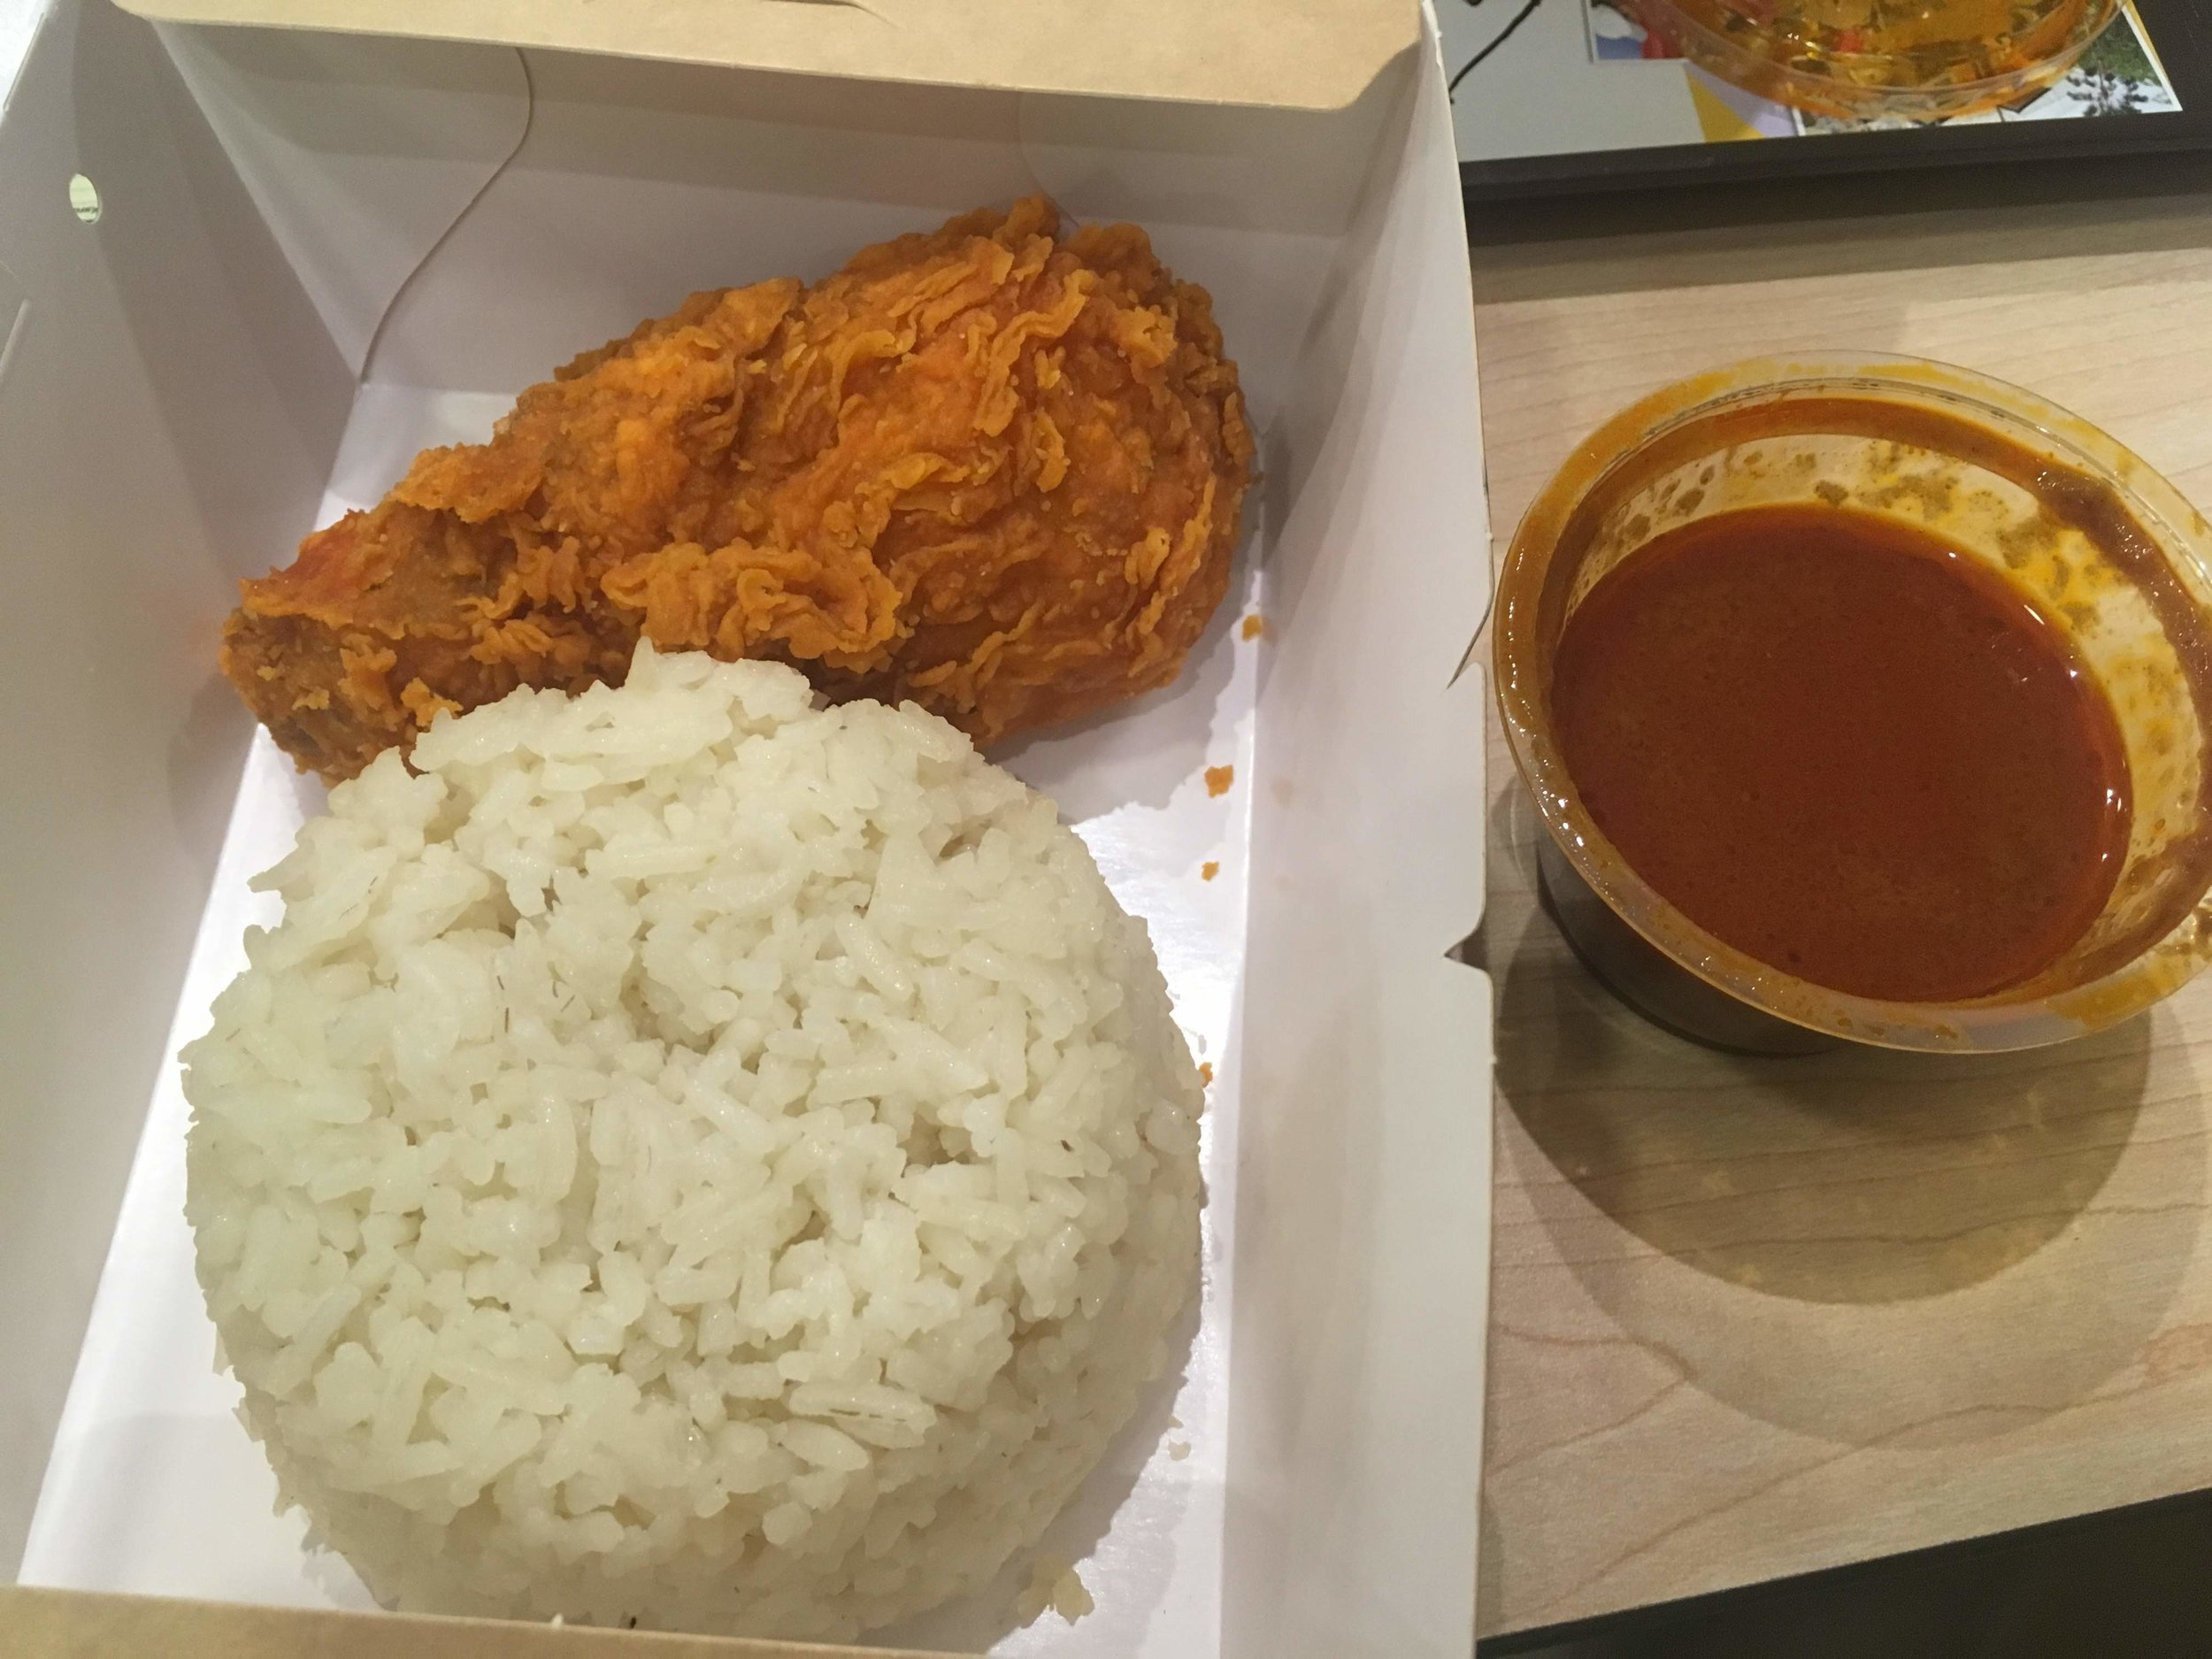 Ayam Goreng McD (spicy chicken and rice) ordered at a McDonald's in Kuala Lumpur, Malaysia